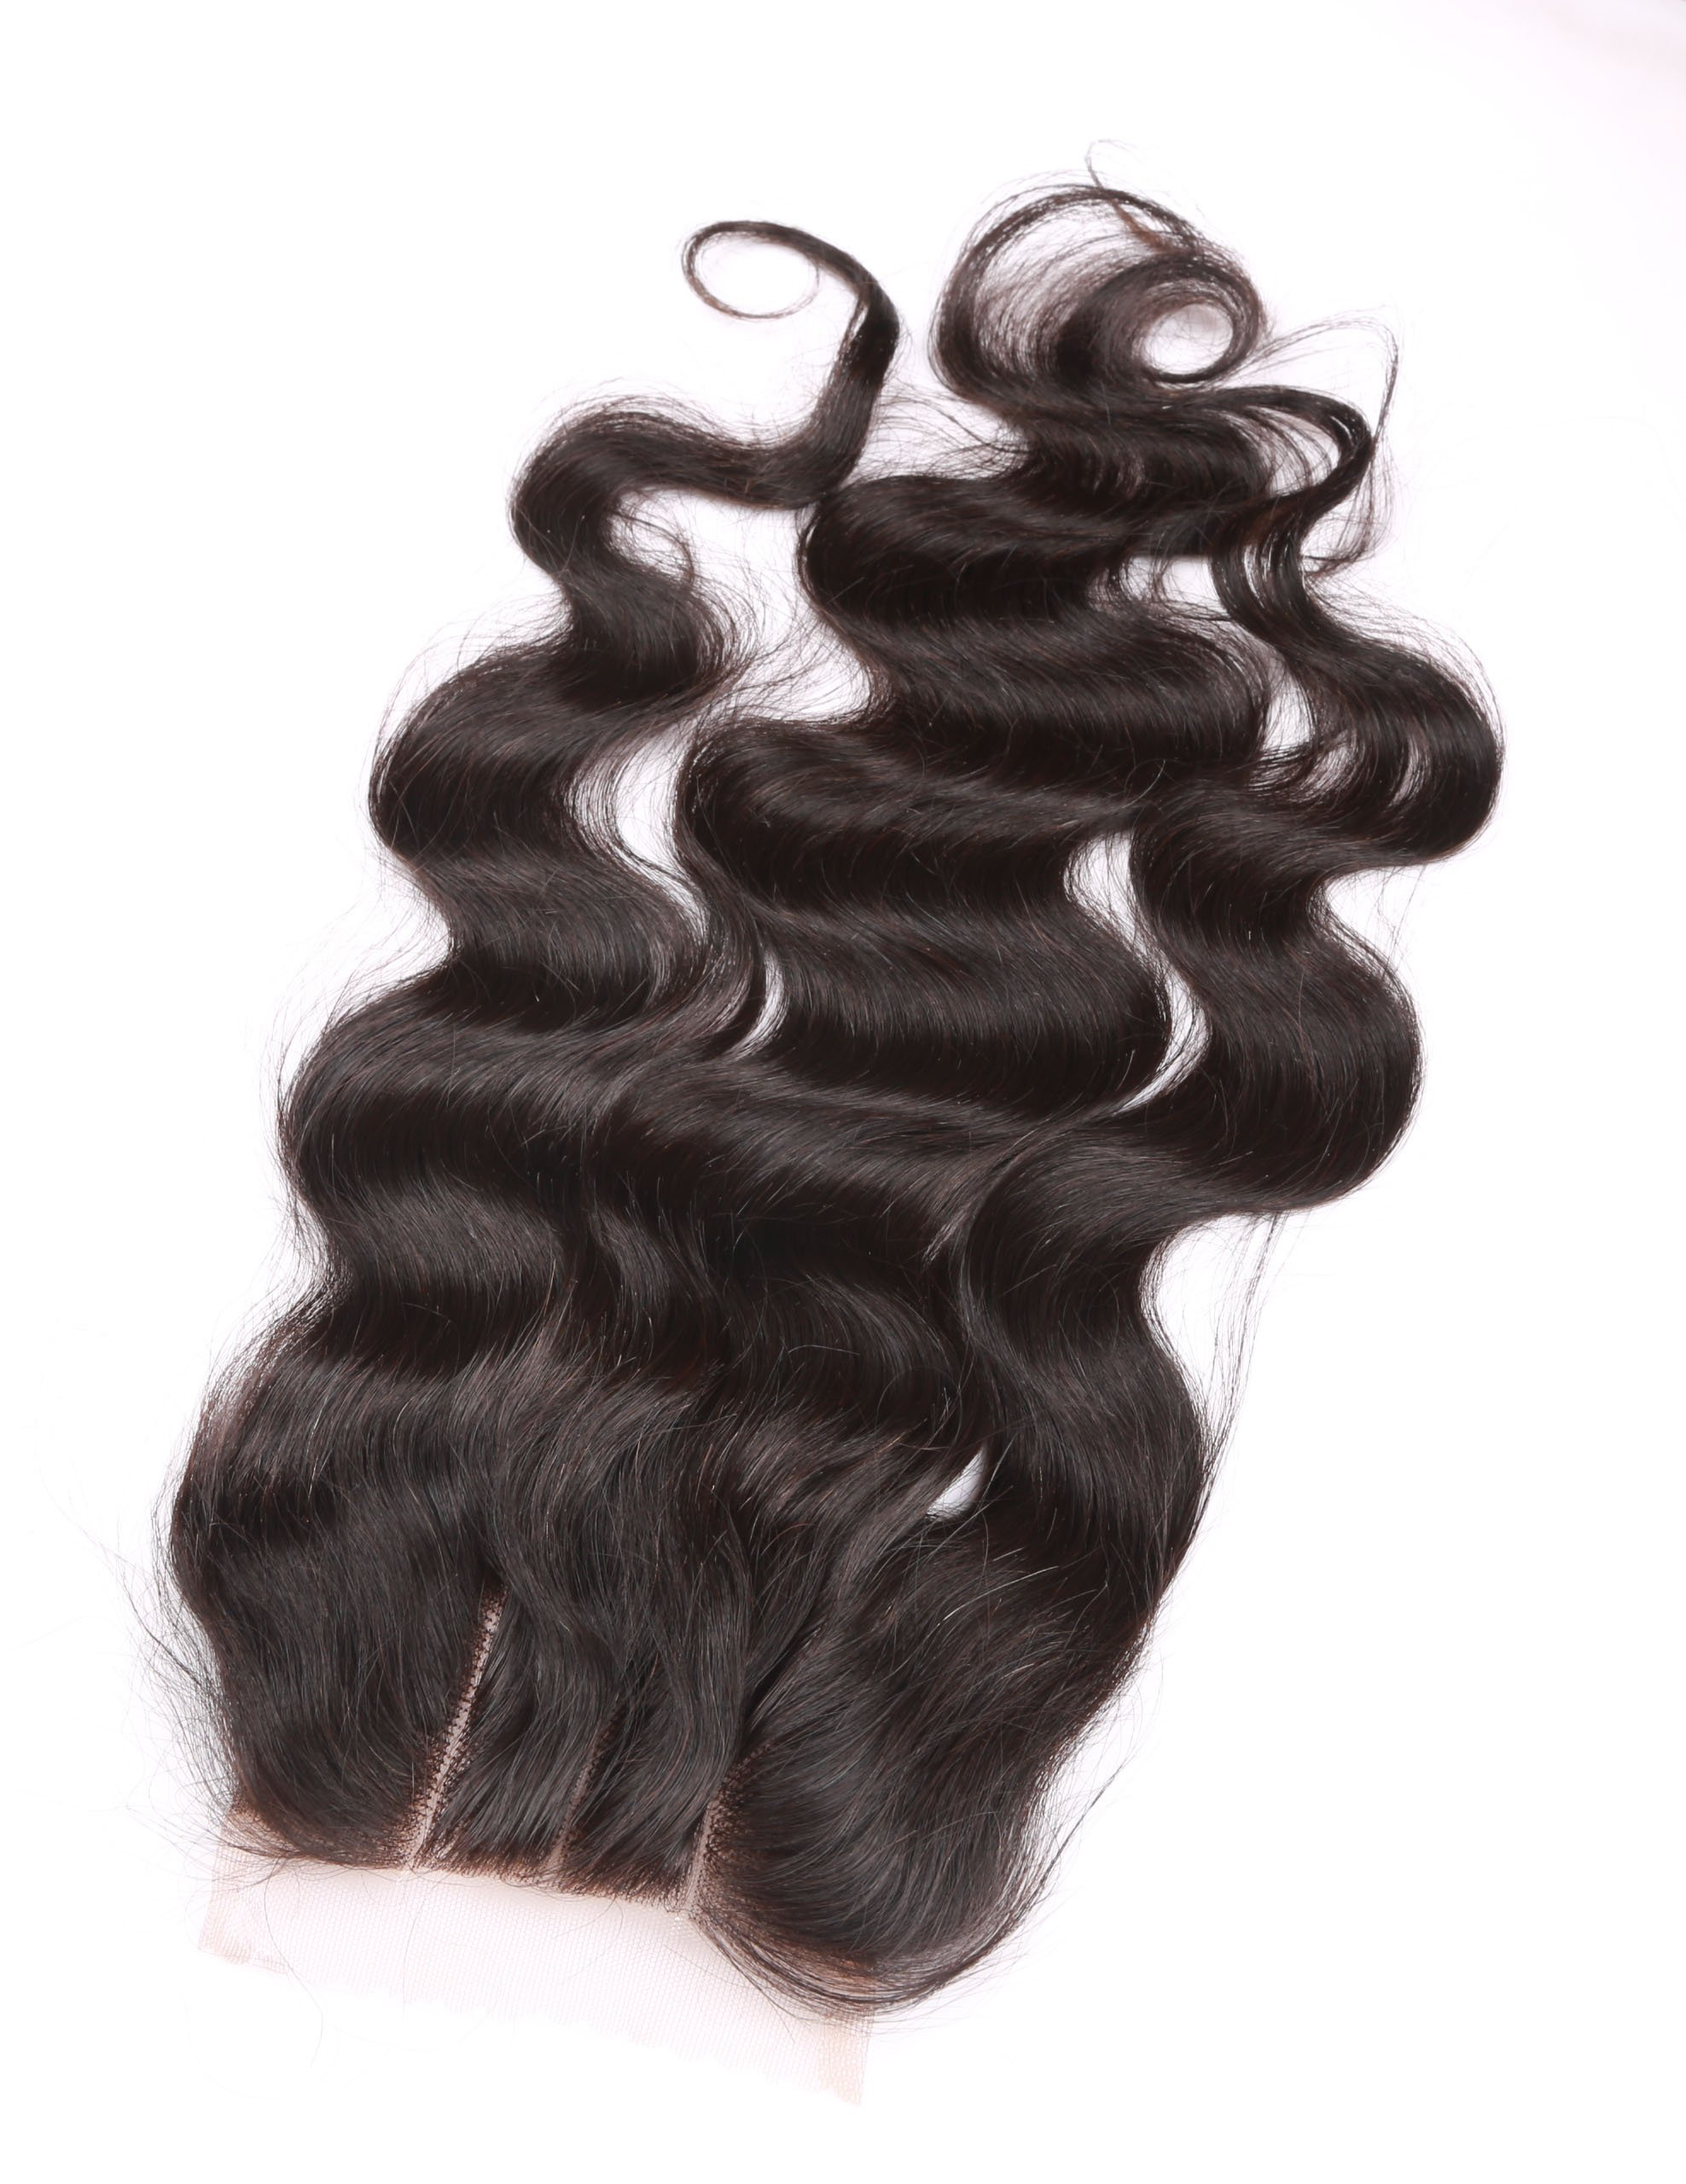 Fennell 3 Part Closure Body Wave Virgin Brazilian Hair 130% Density Lace Closure Natural Hair Color Soft and Silky(8''-20'') (8 inches) by Fennell (Image #4)